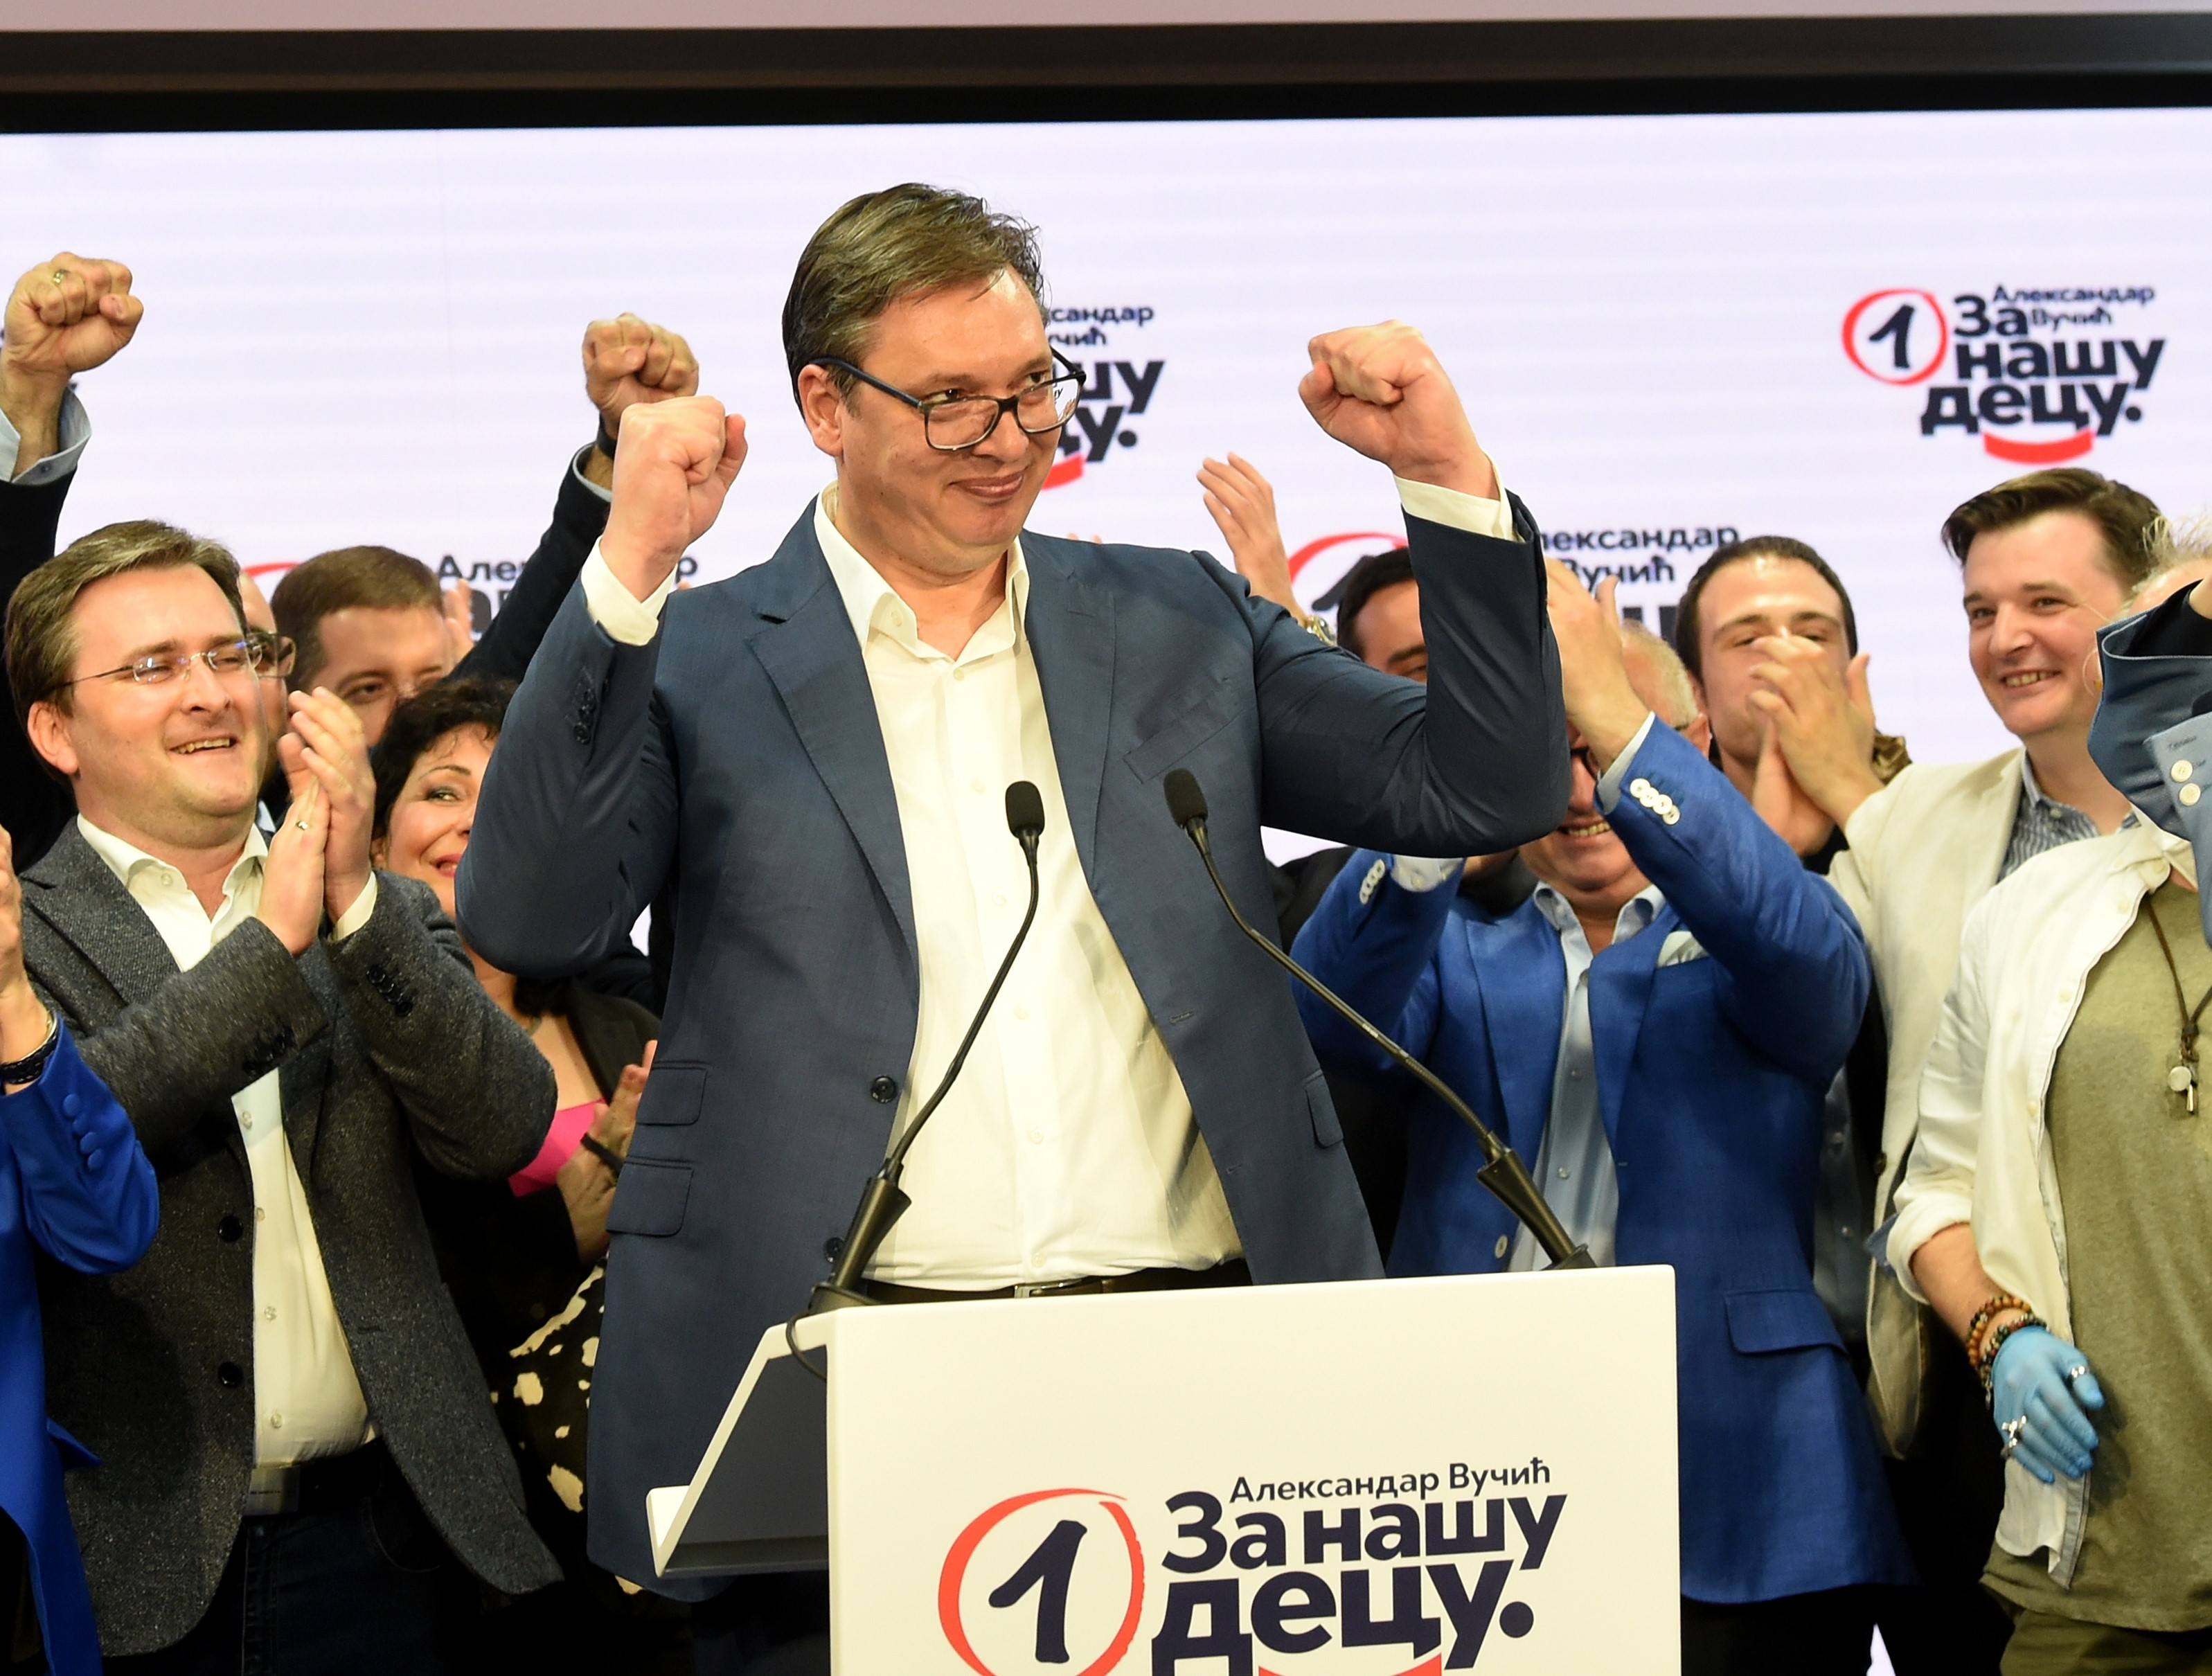 Serbia's ruling party wins 61% of vote amid opposition boycott